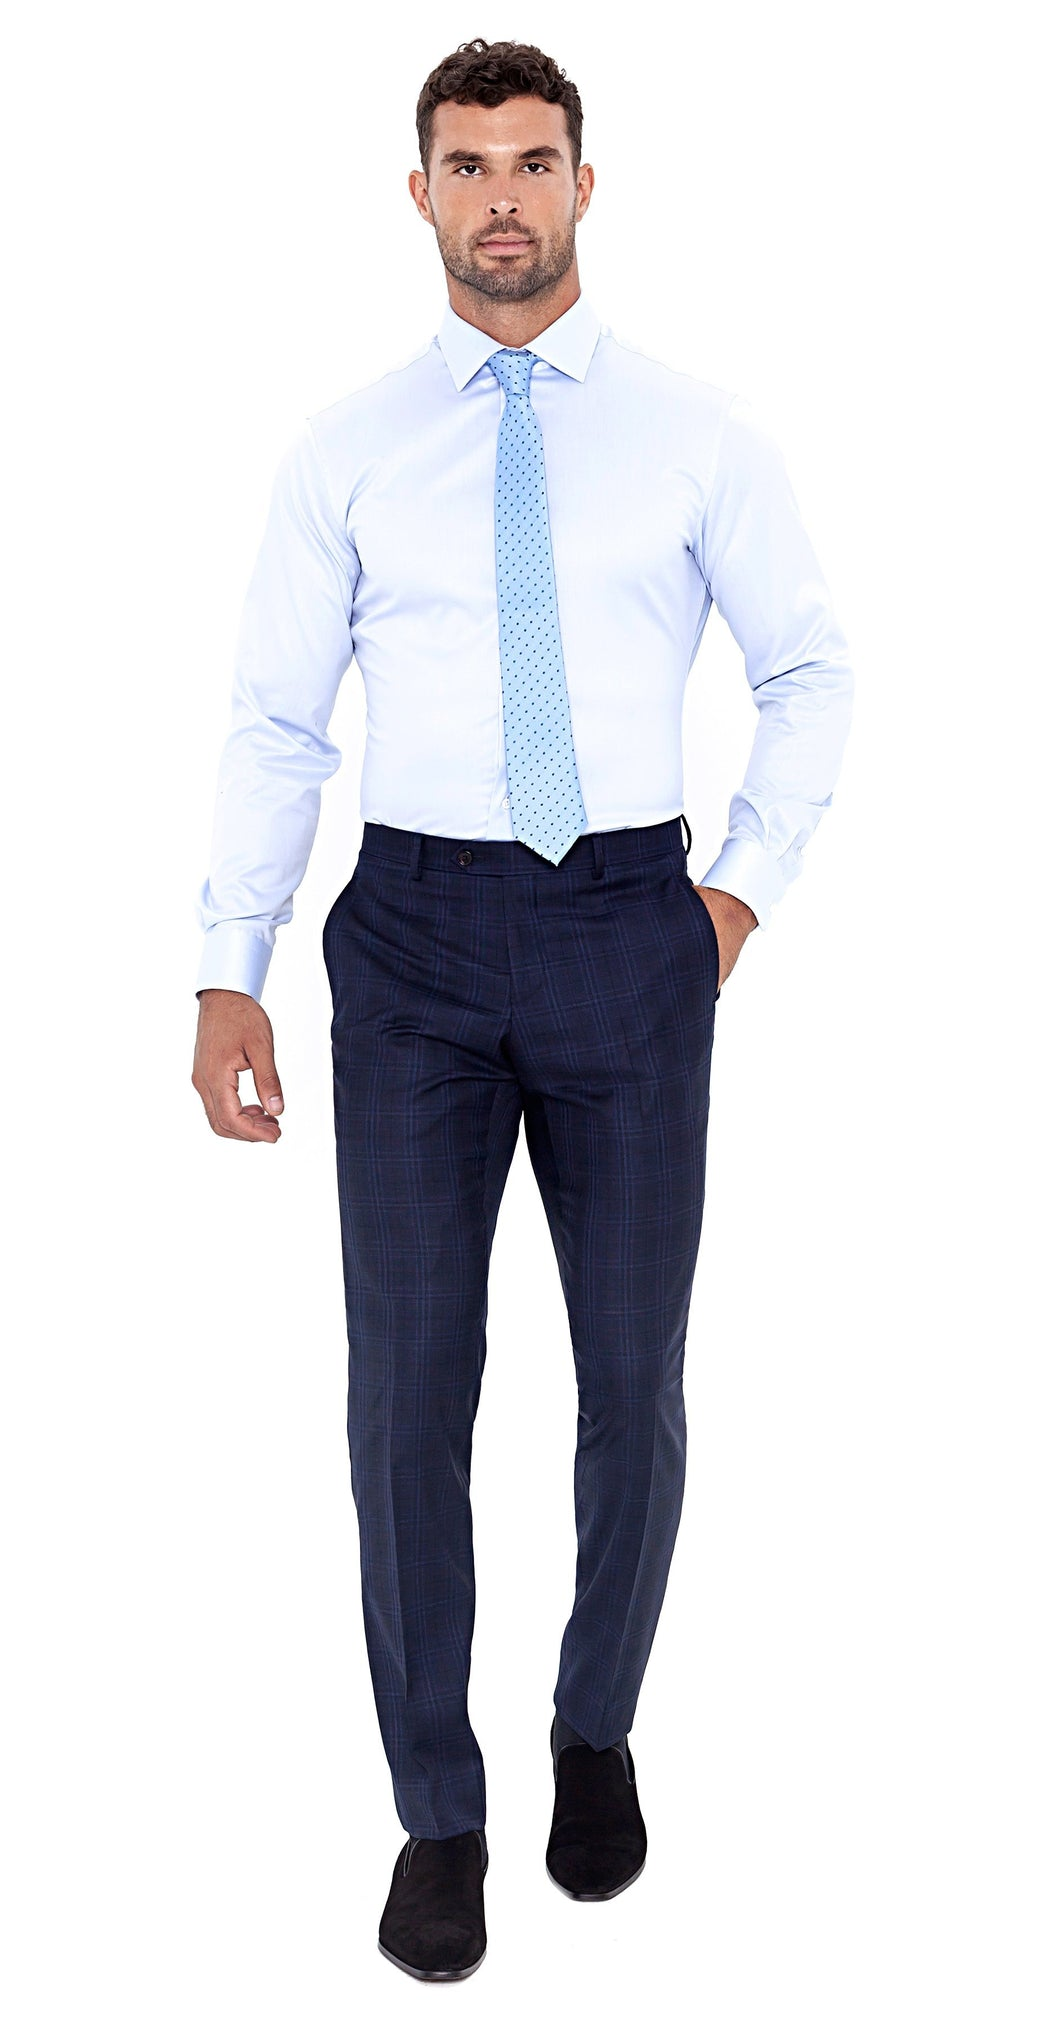 Four Seasons Super 130s Navy Windowpane Trouser - Enzo Custom